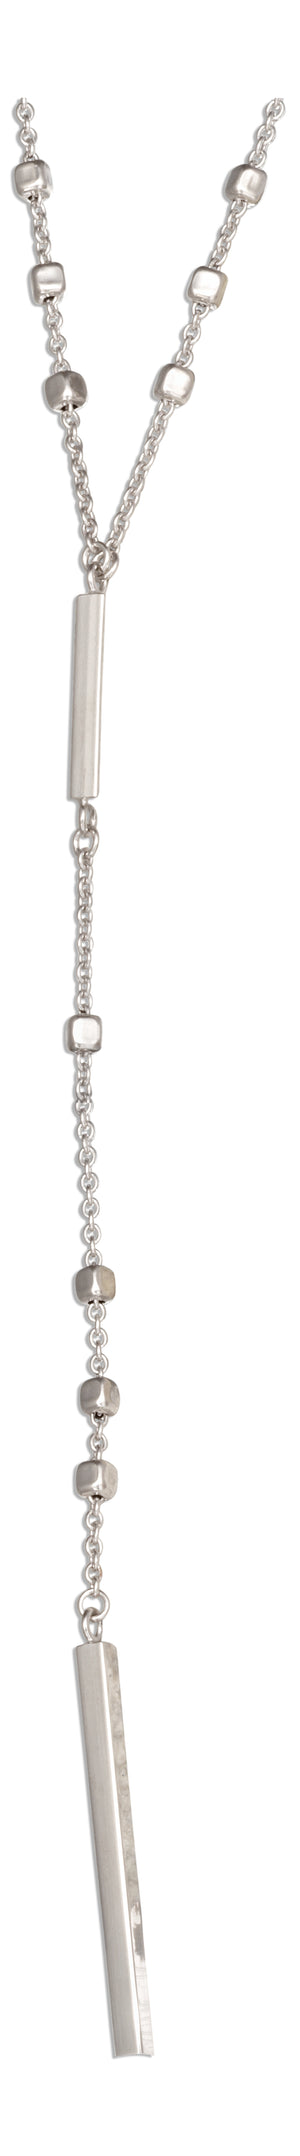 Sterling Silver 22 inch Dangling Bar Lariat Necklace on Square Bead Chain